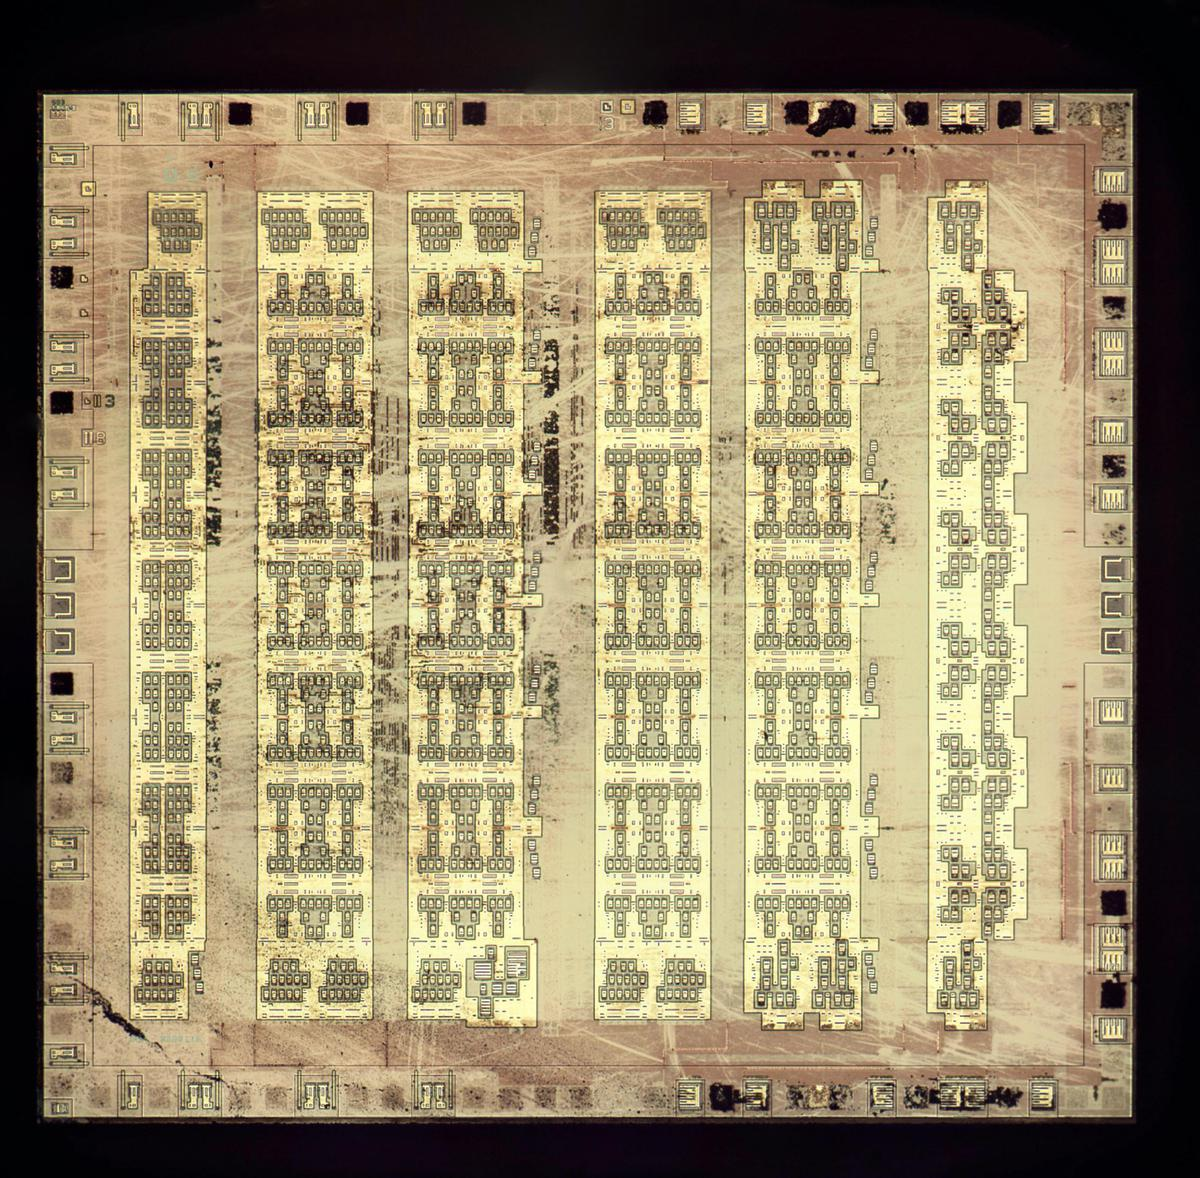 Die photo of the fake 8086 showing the underlying silicon. The metal layers were removed for this photo.